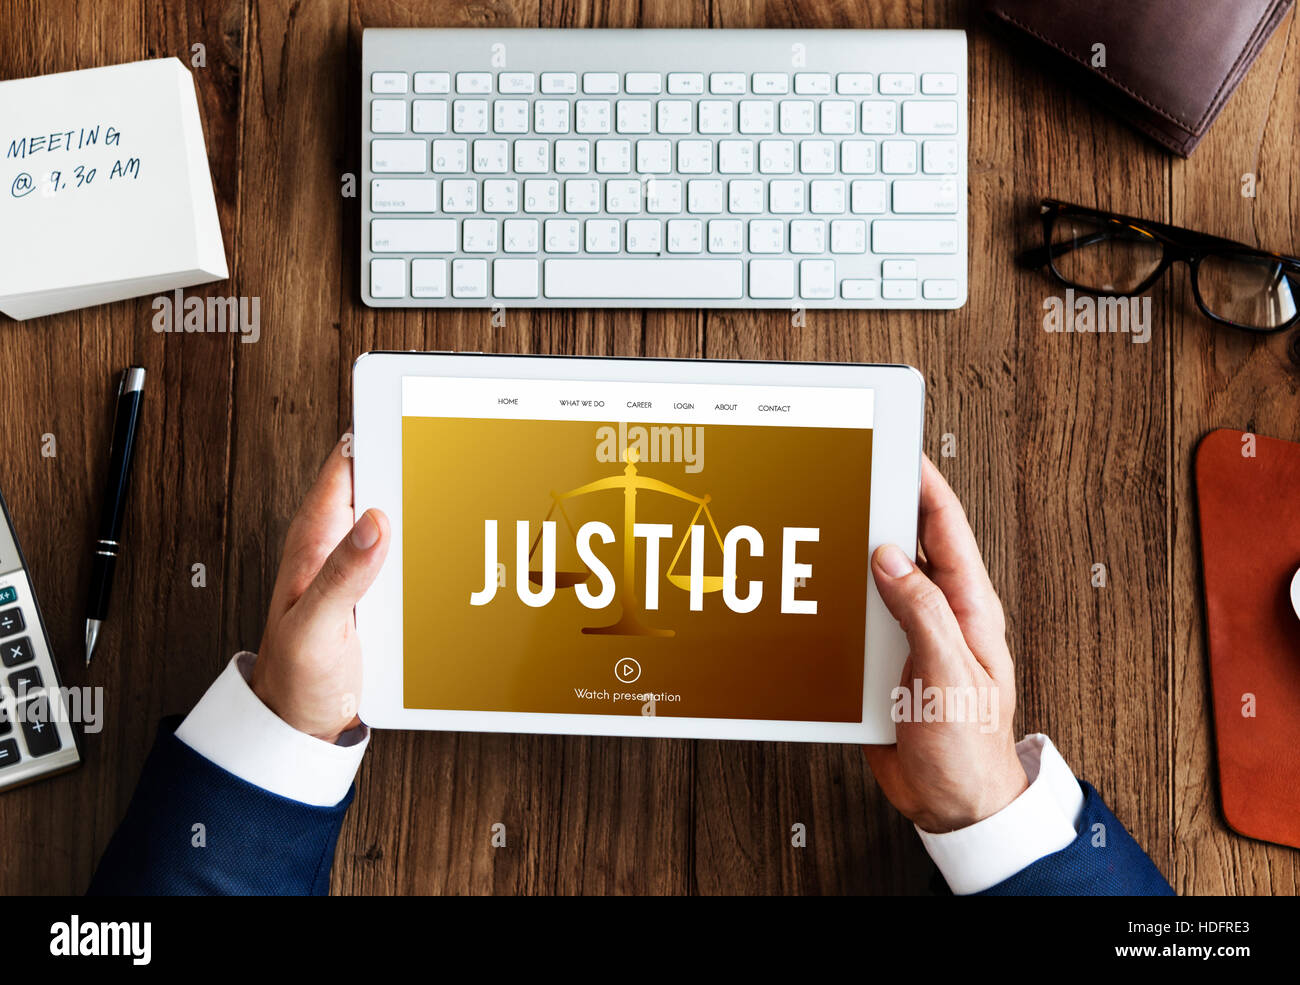 Justice law icon court concept - Stock Image